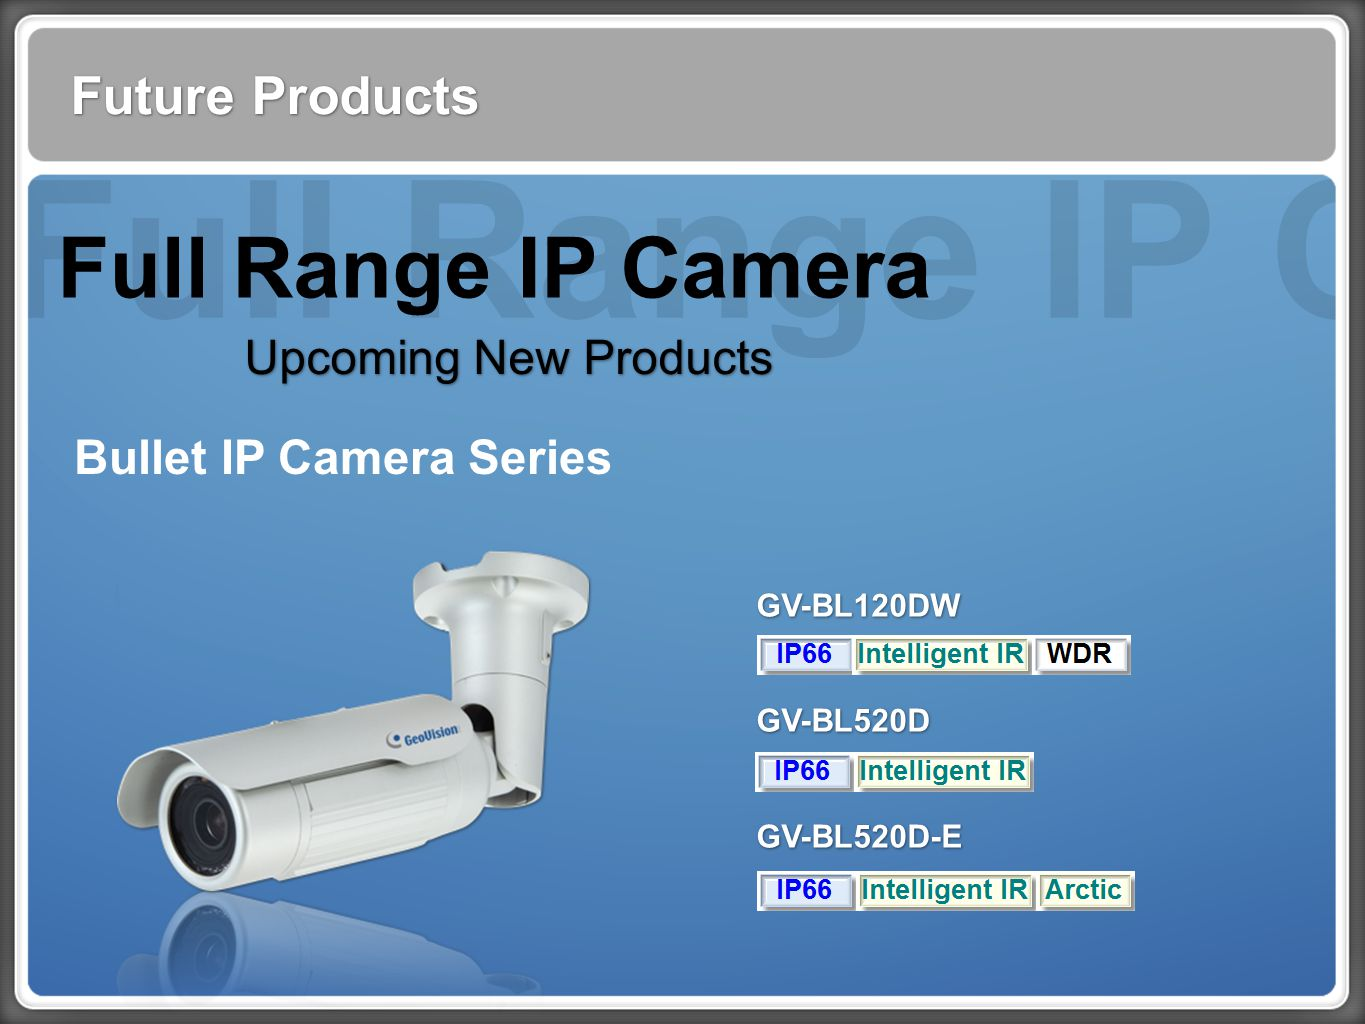 Full Range IP Cam Future Products Full Range IP Camera Upcoming New Products Bullet IP Camera Series GV-BL120DW GV-BL520D GV-BL520D-E GV-BL120DW GV-BL520D GV-BL520D-E